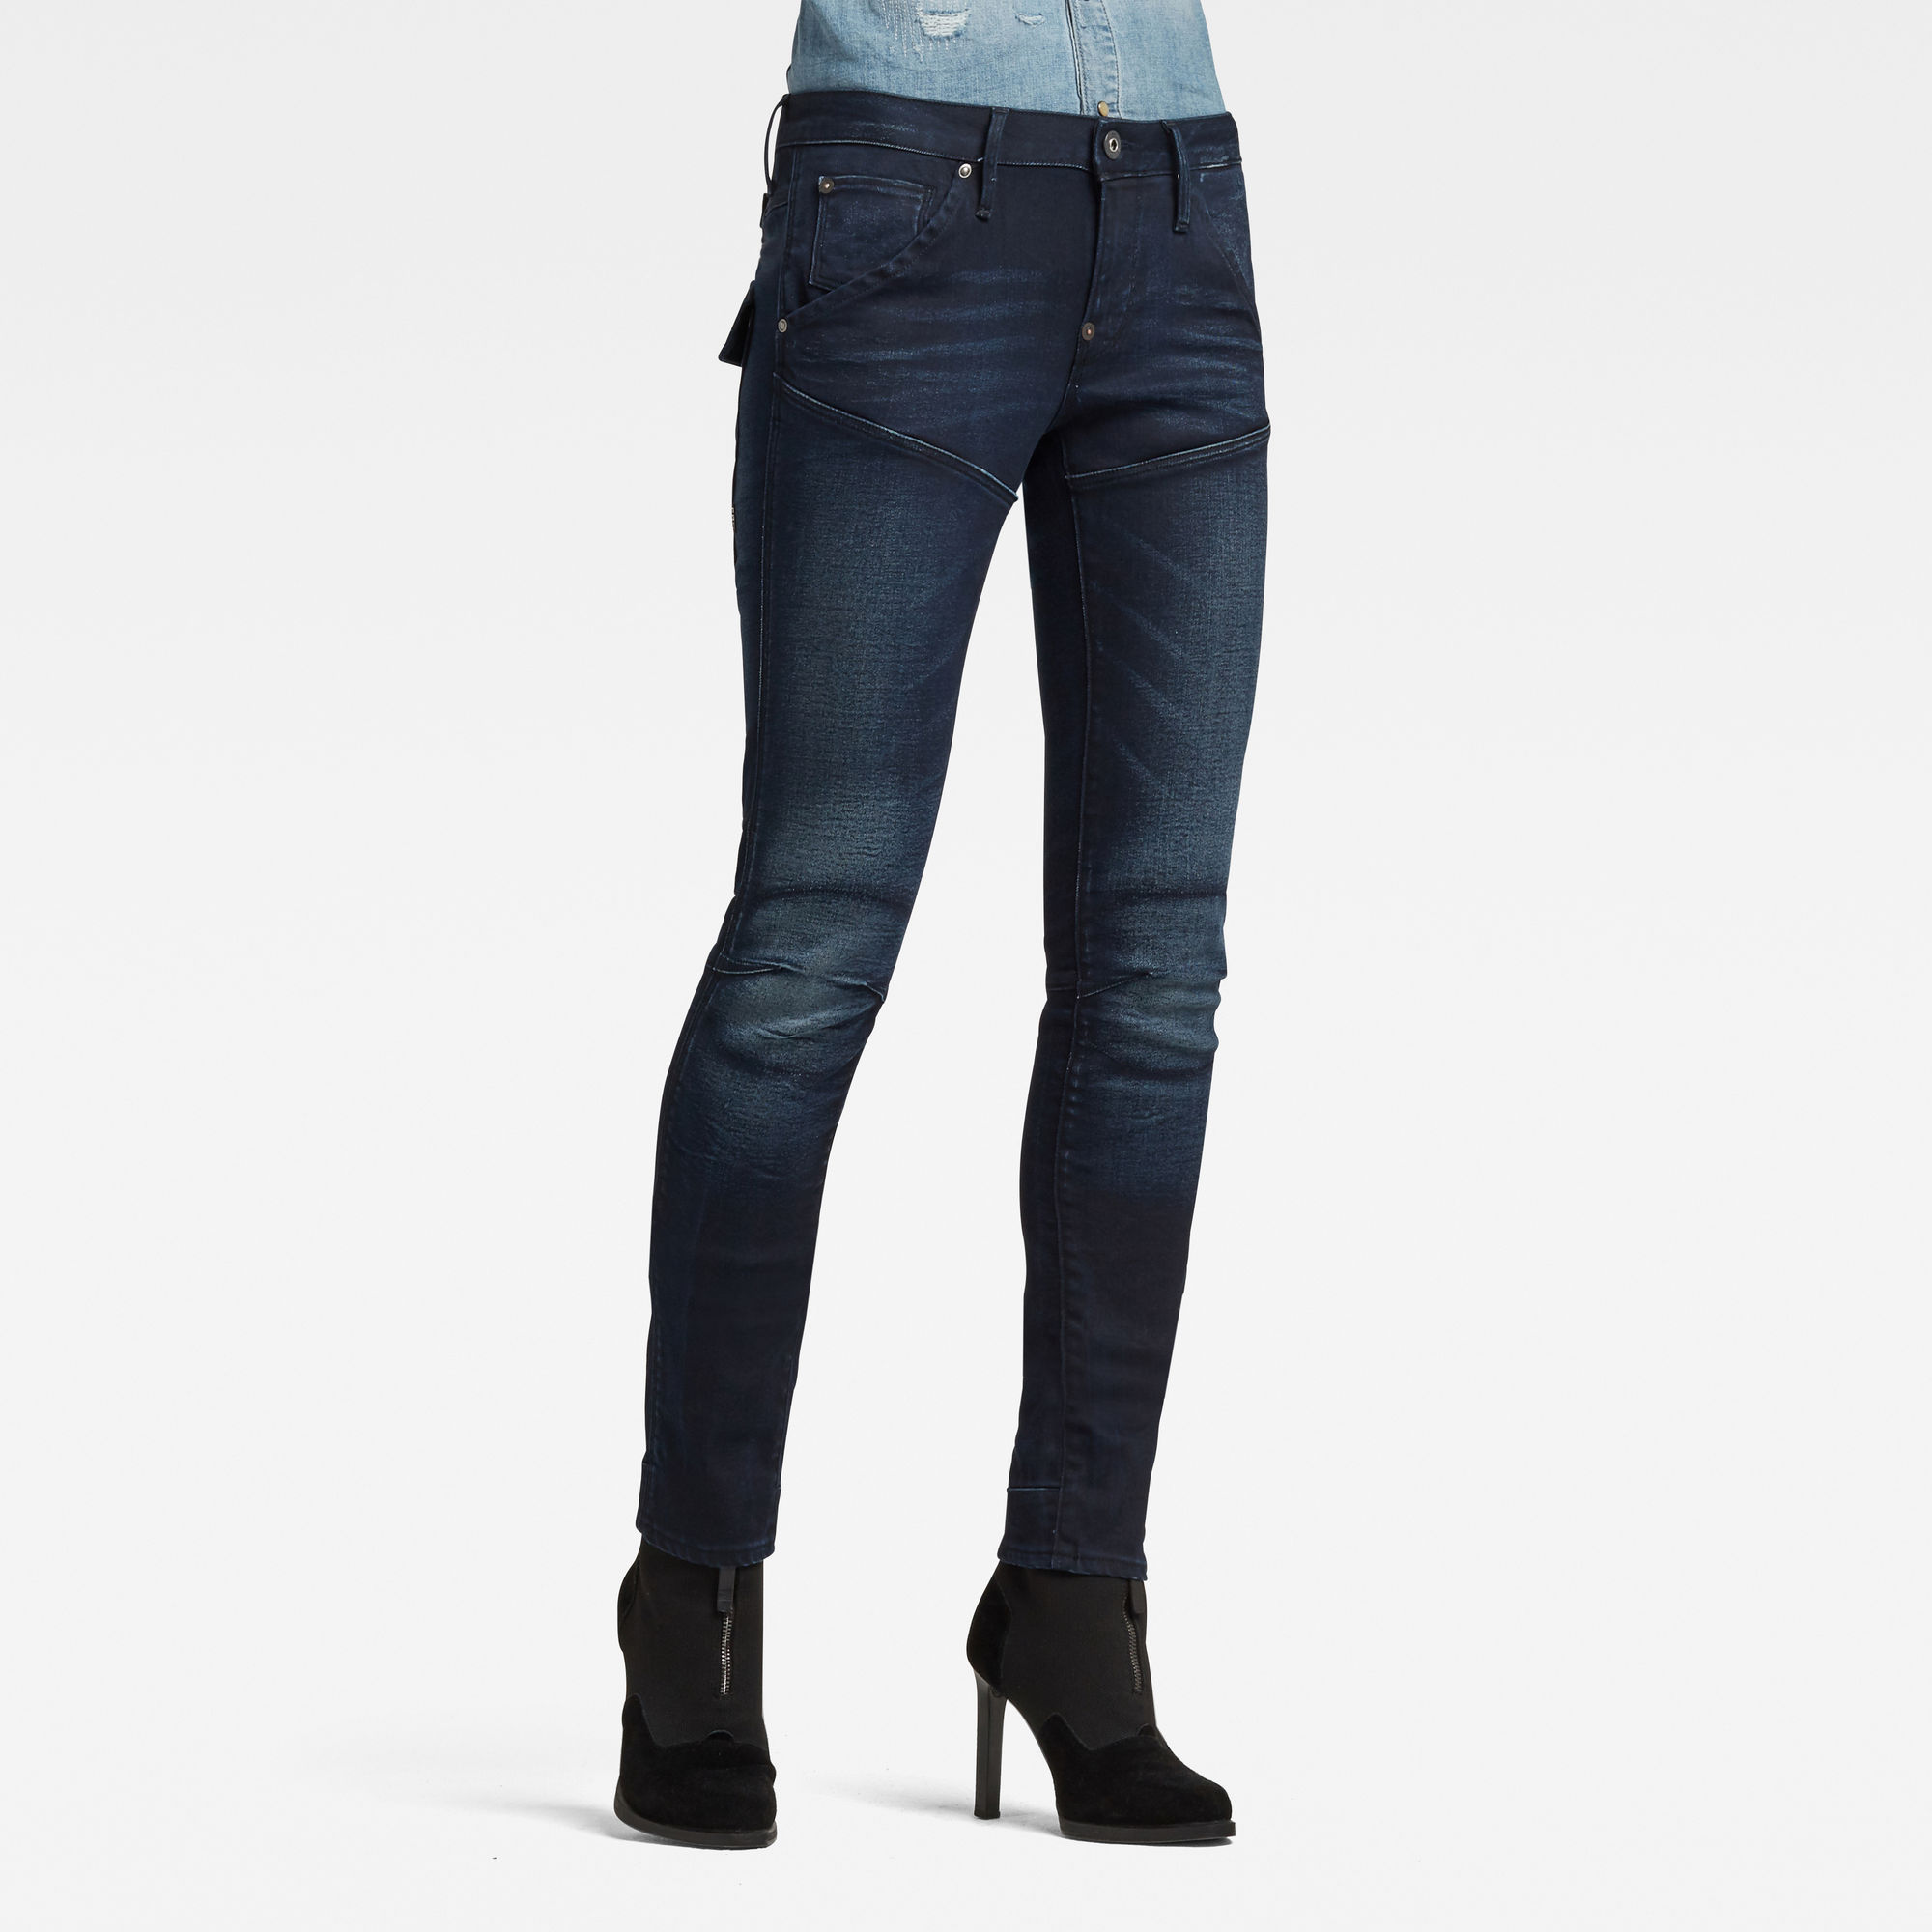 G-Star RAW Dames 5620 Heritage Embro Tapered Jean Blauw